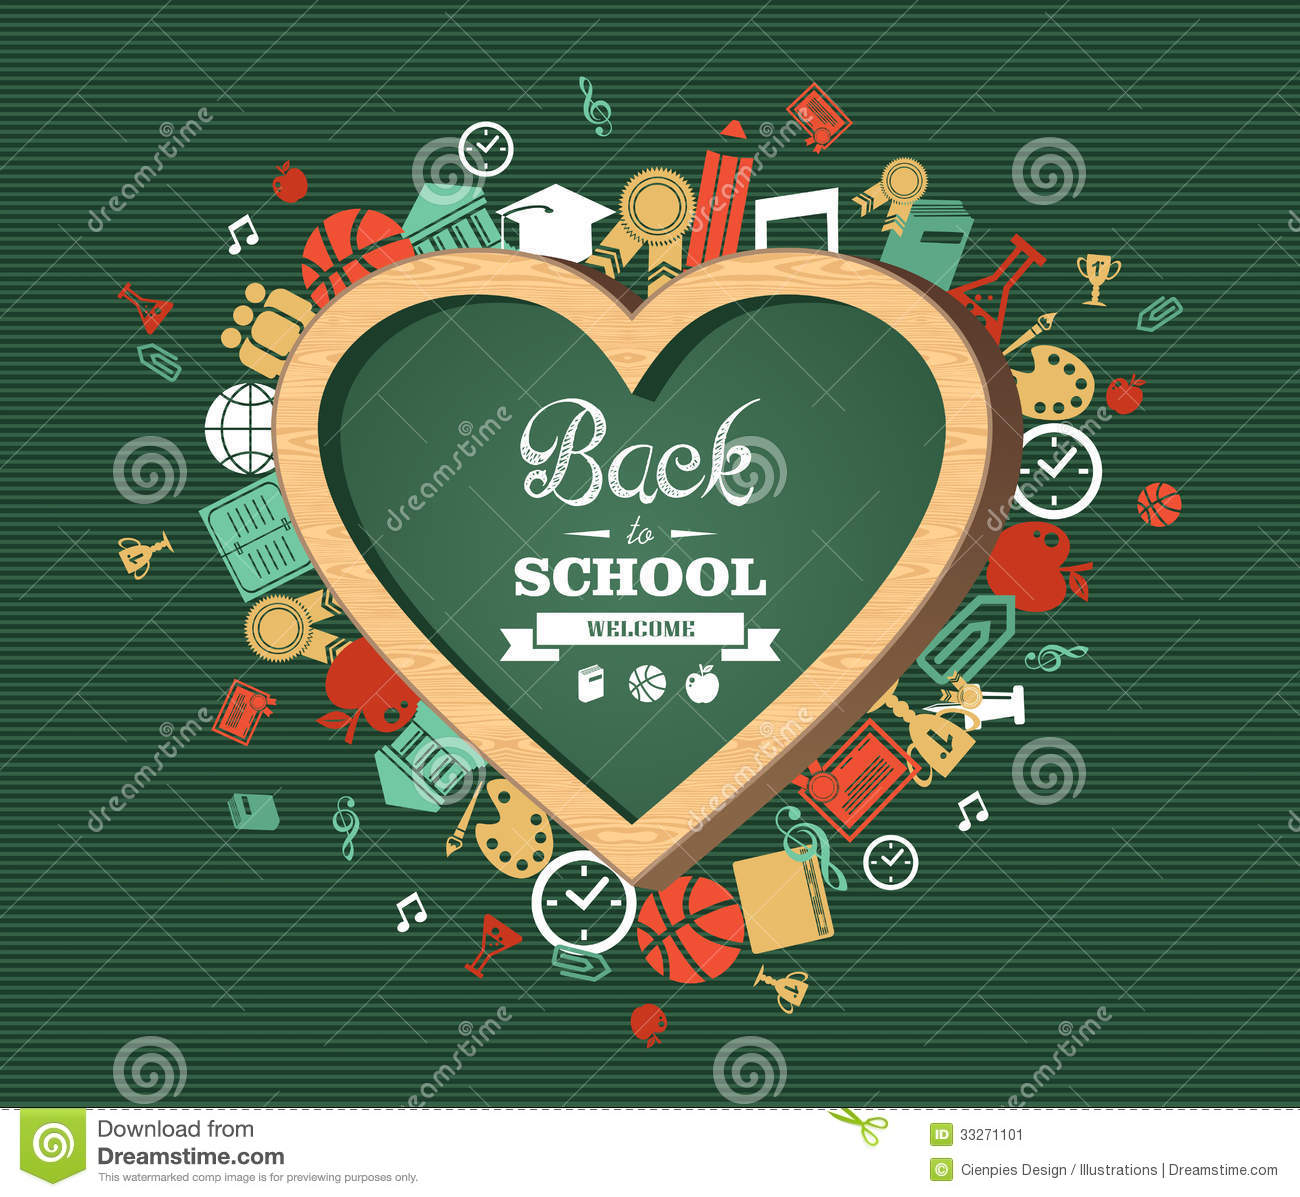 Back to school text education love symbol and icons stock vector back to school text education love symbol and icons buycottarizona Gallery